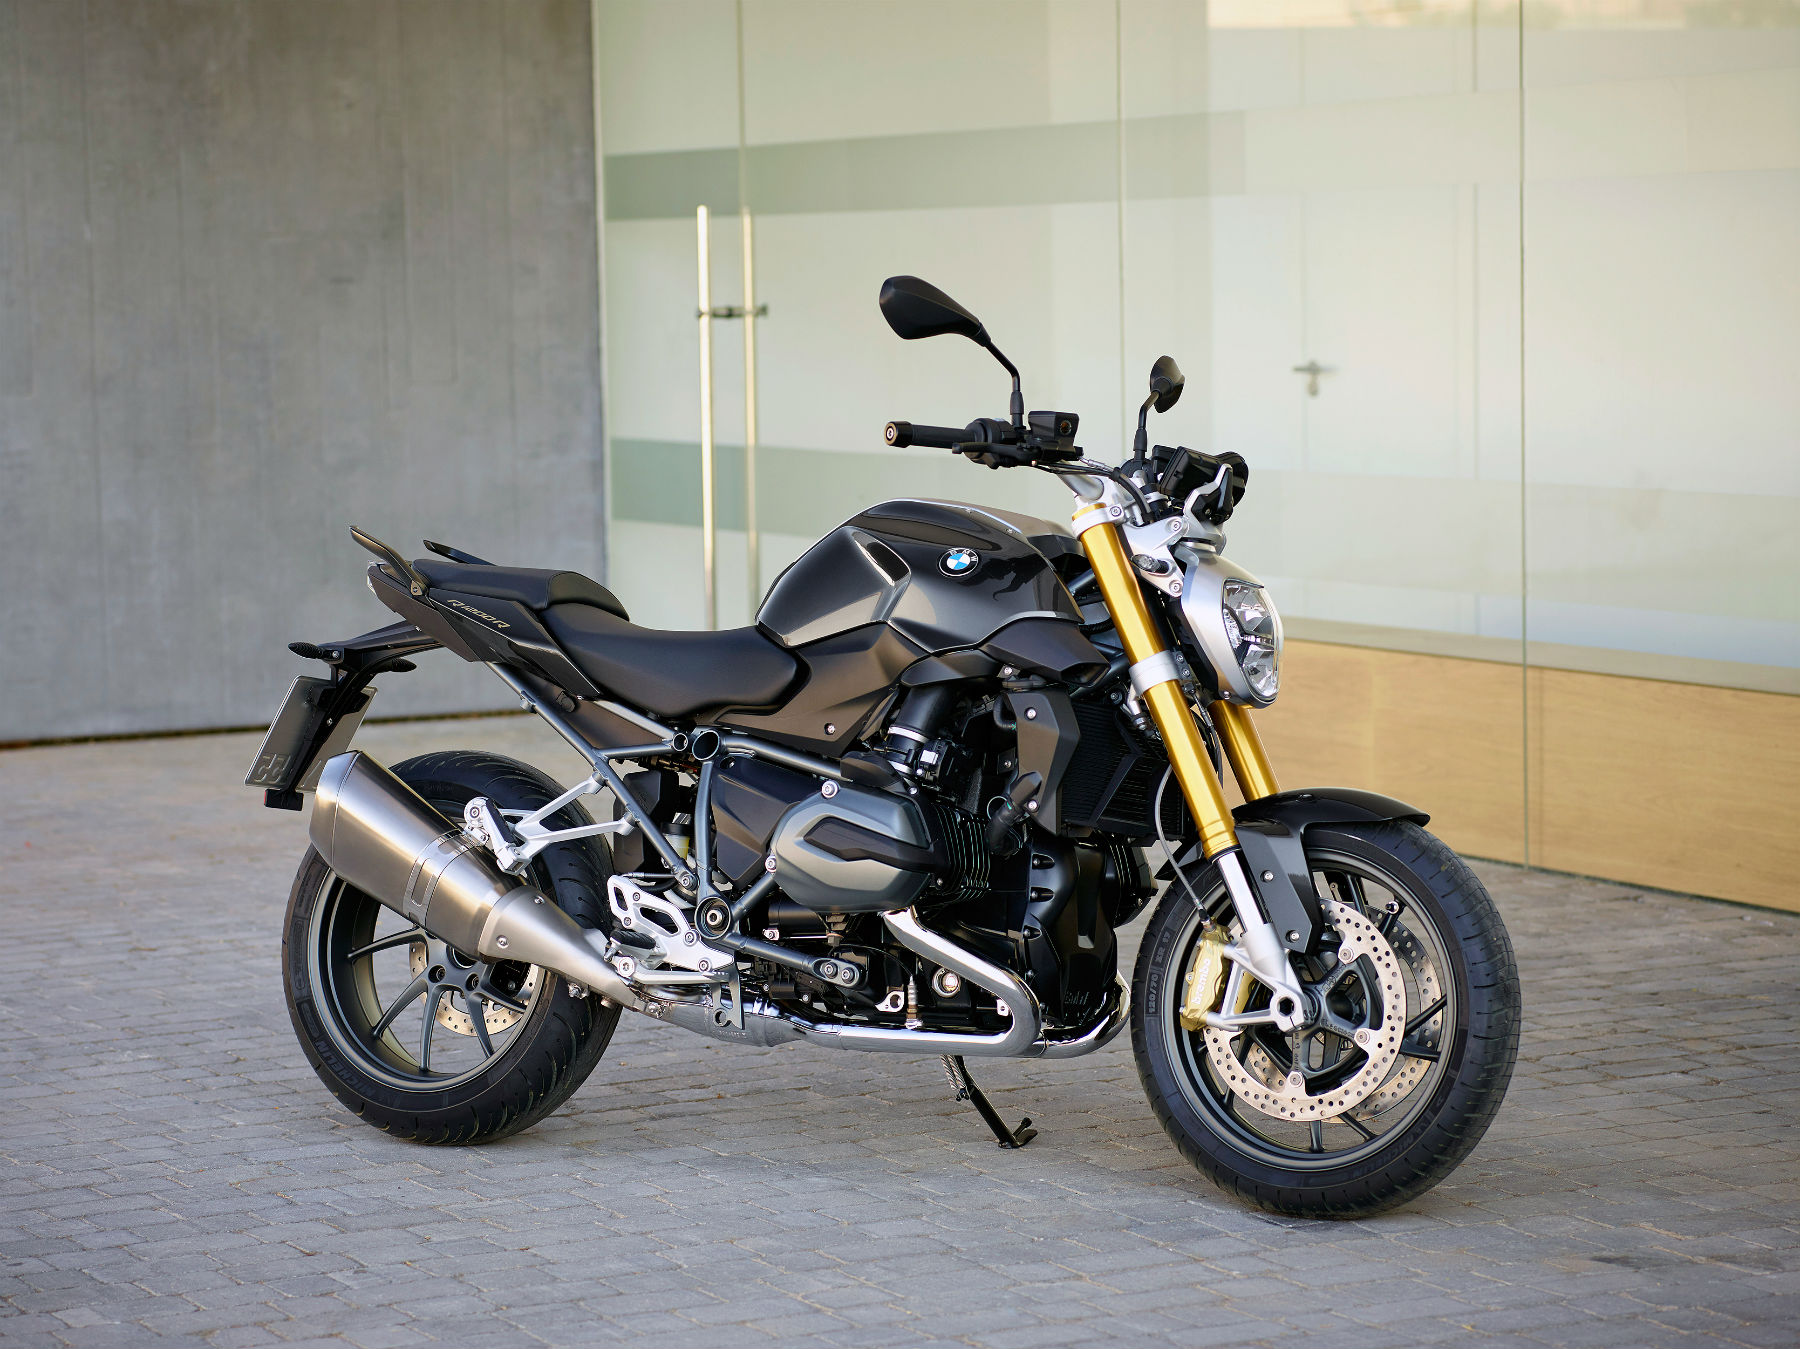 73576 Extraordinary Bmw R 1200 R Nine T Cars Trend